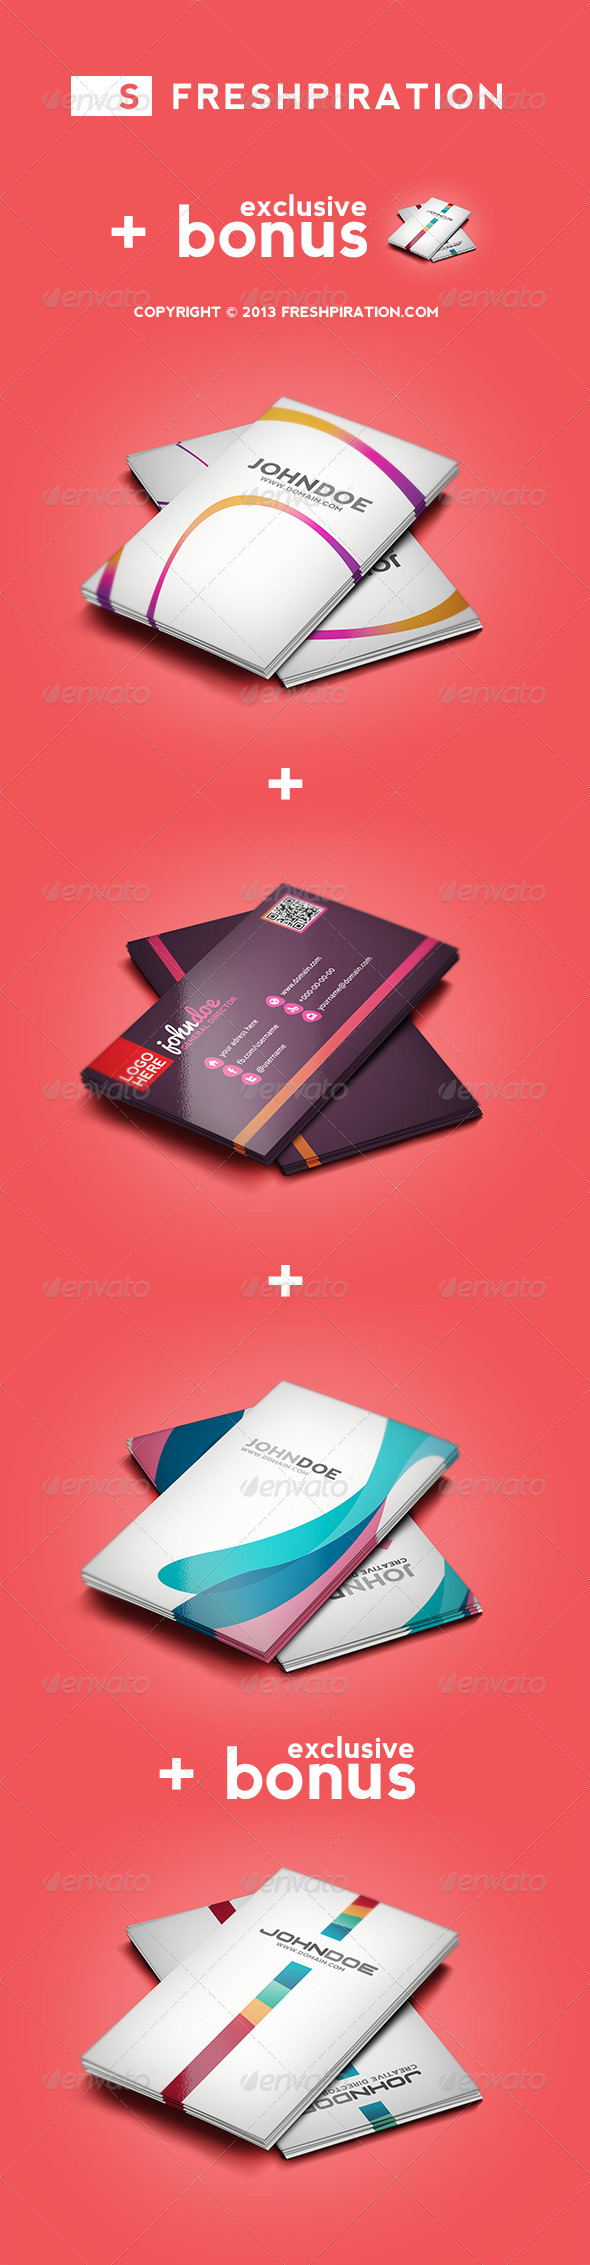 4 Colorful Business Cards Pack (1 Exclusive Bonus) - Creative Business Cards